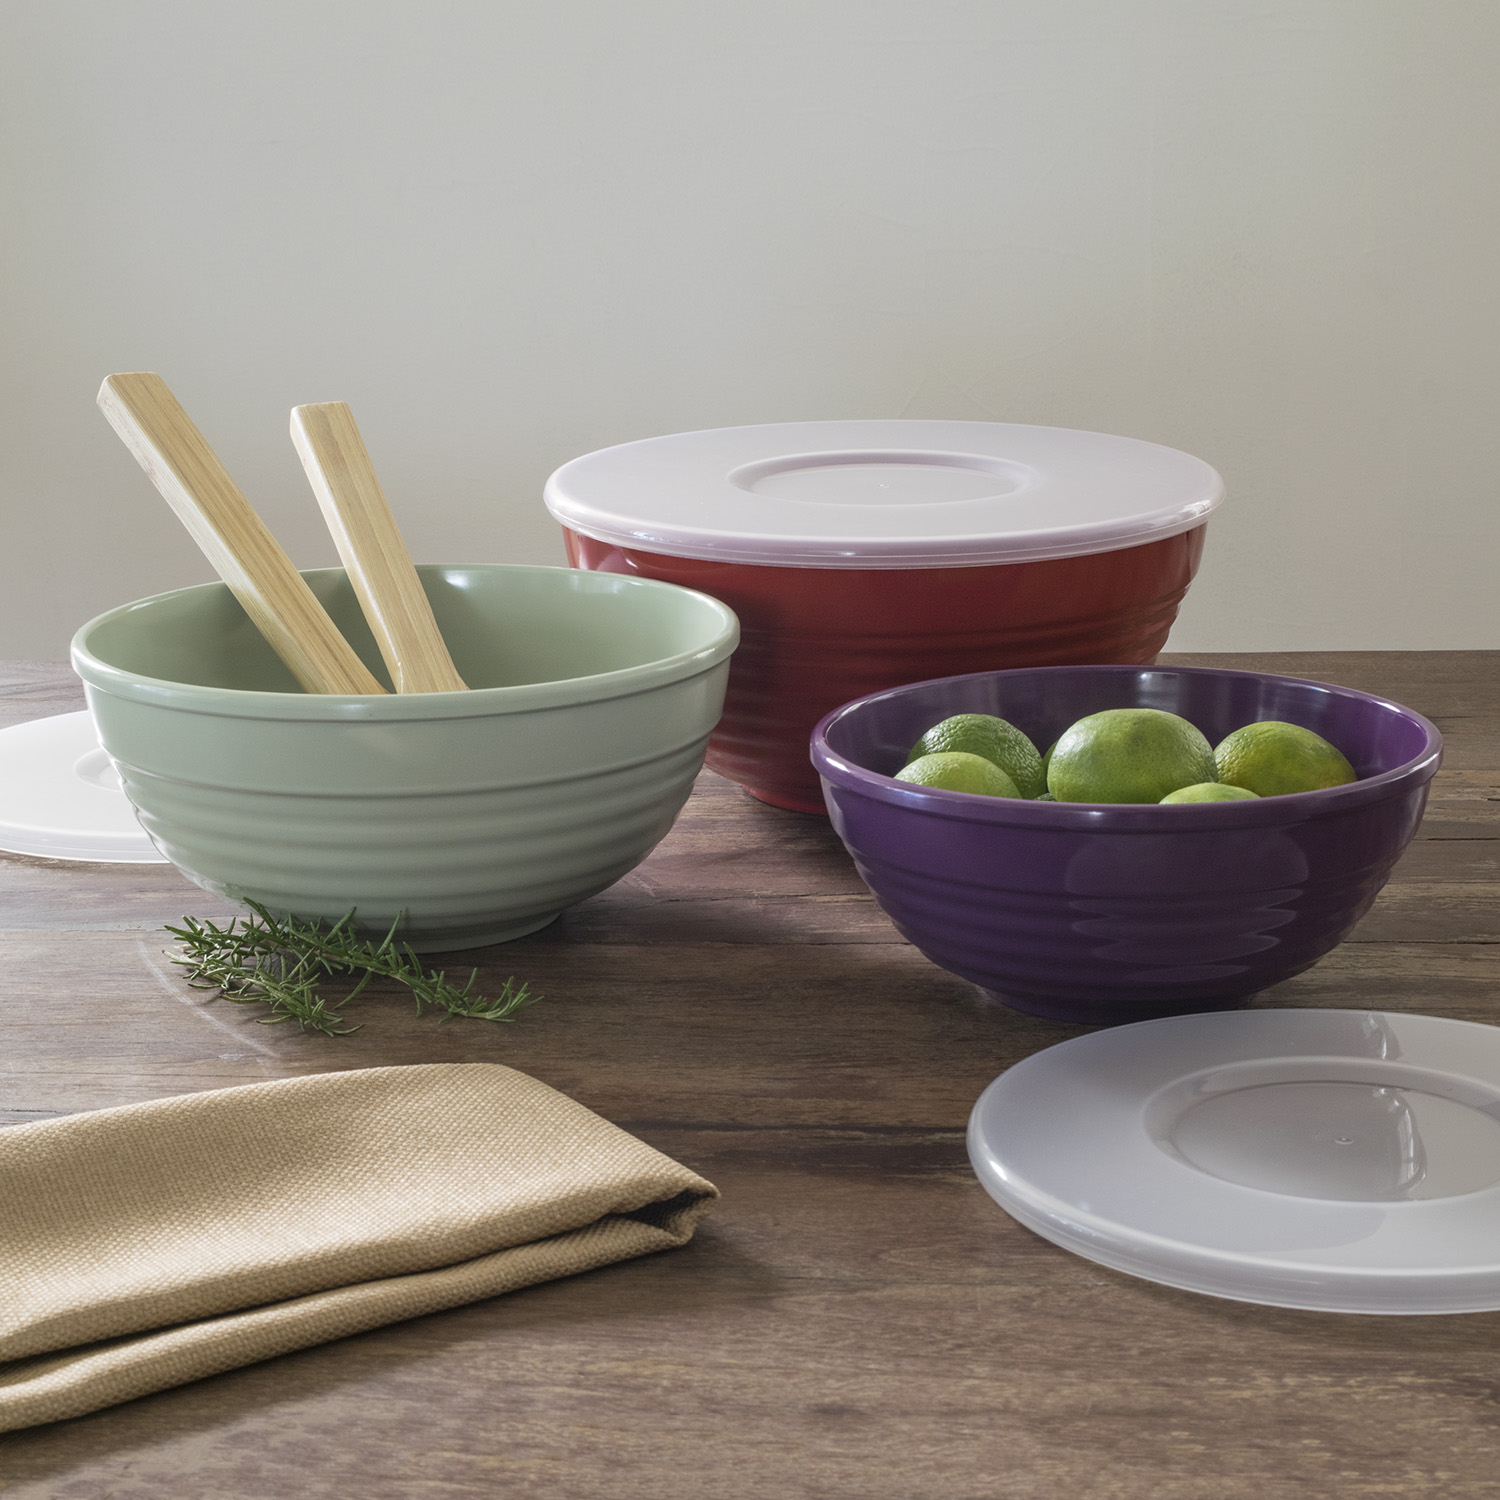 Mainstays Ribbed Serve Bowls with Lids 6 Piece Set